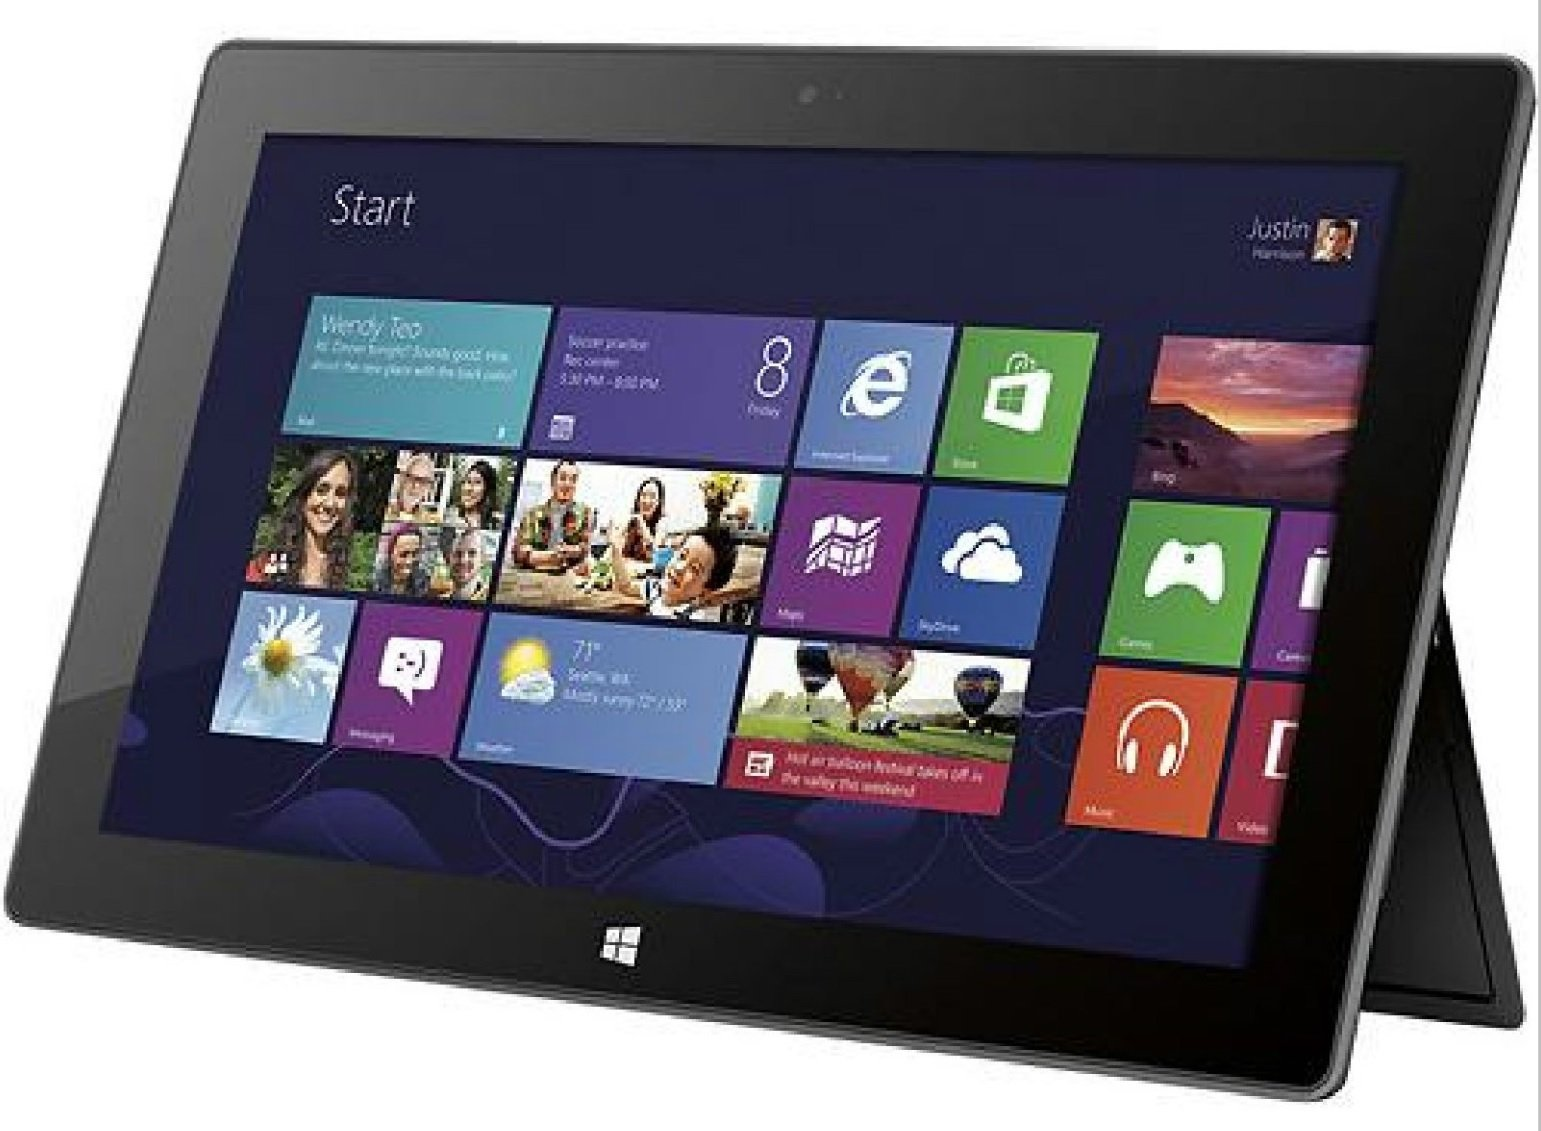 Microsoft Surface 64GB Tablet with Microsoft Office Home and Student 2013 RT, wifi, Bluetooth by Microsoft